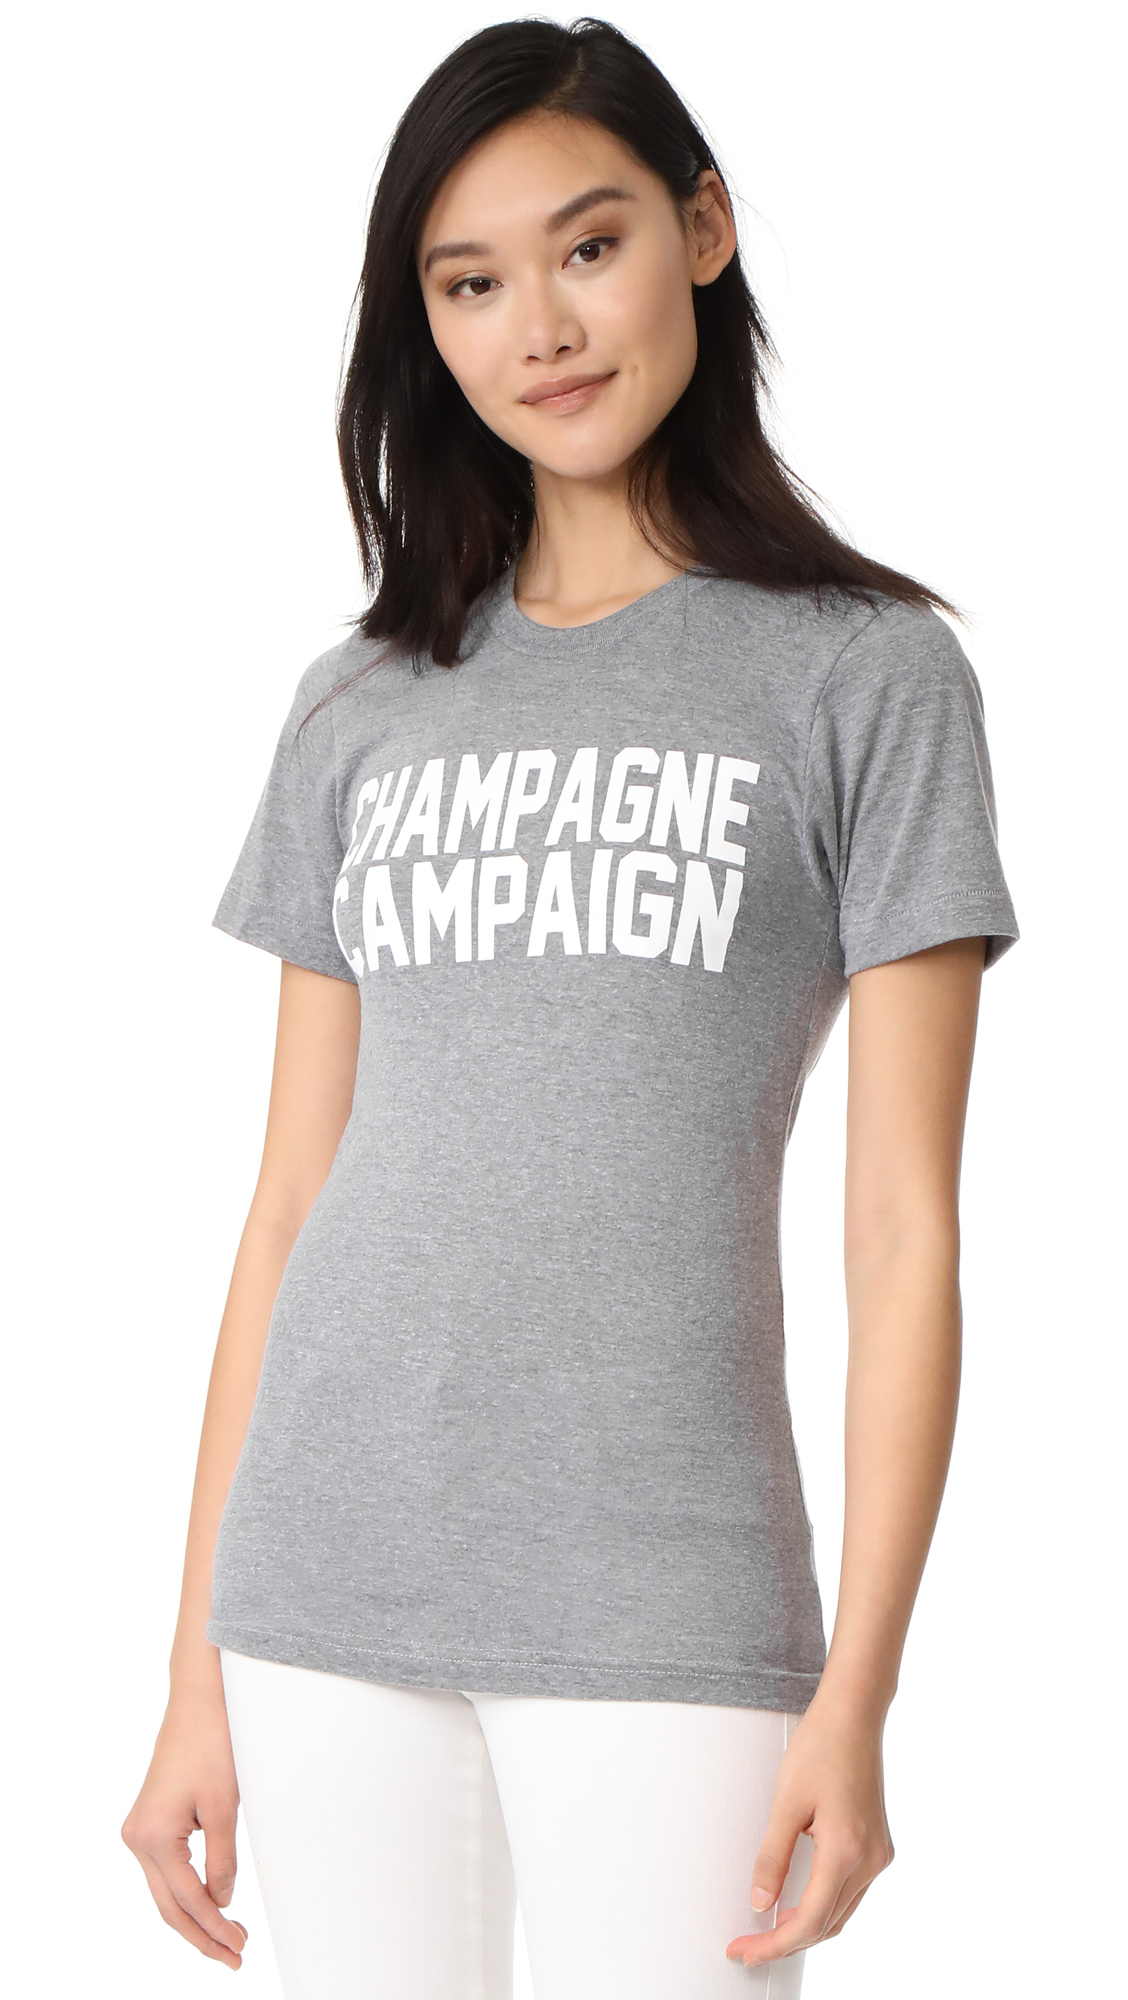 Private Party Champagne Campaign Tee